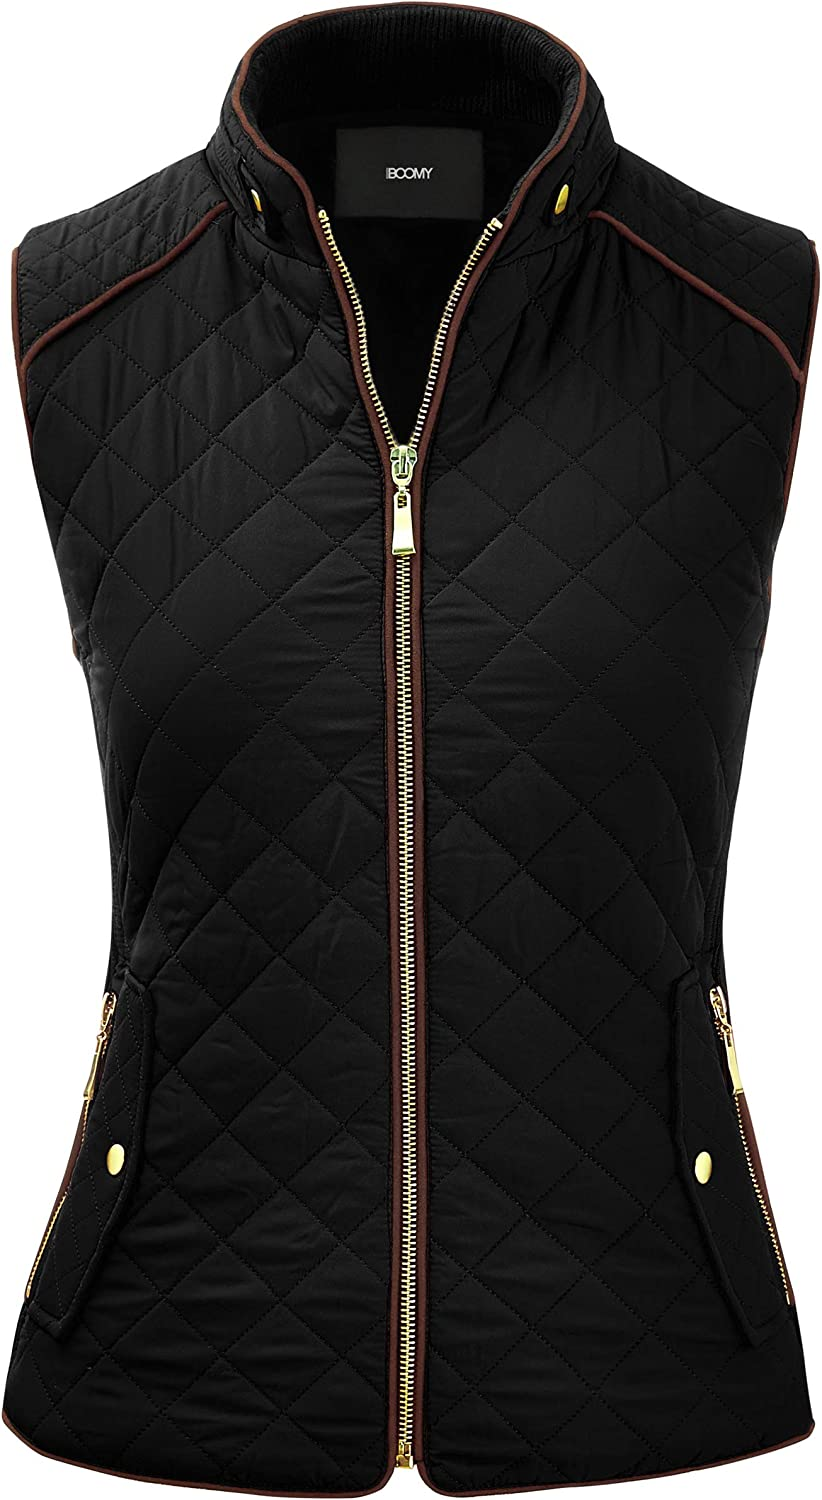 FASHION BOOMY Women's Quilted Padding Vest - Lightweight Zip Up Jacket - Regular and Plus Sizes